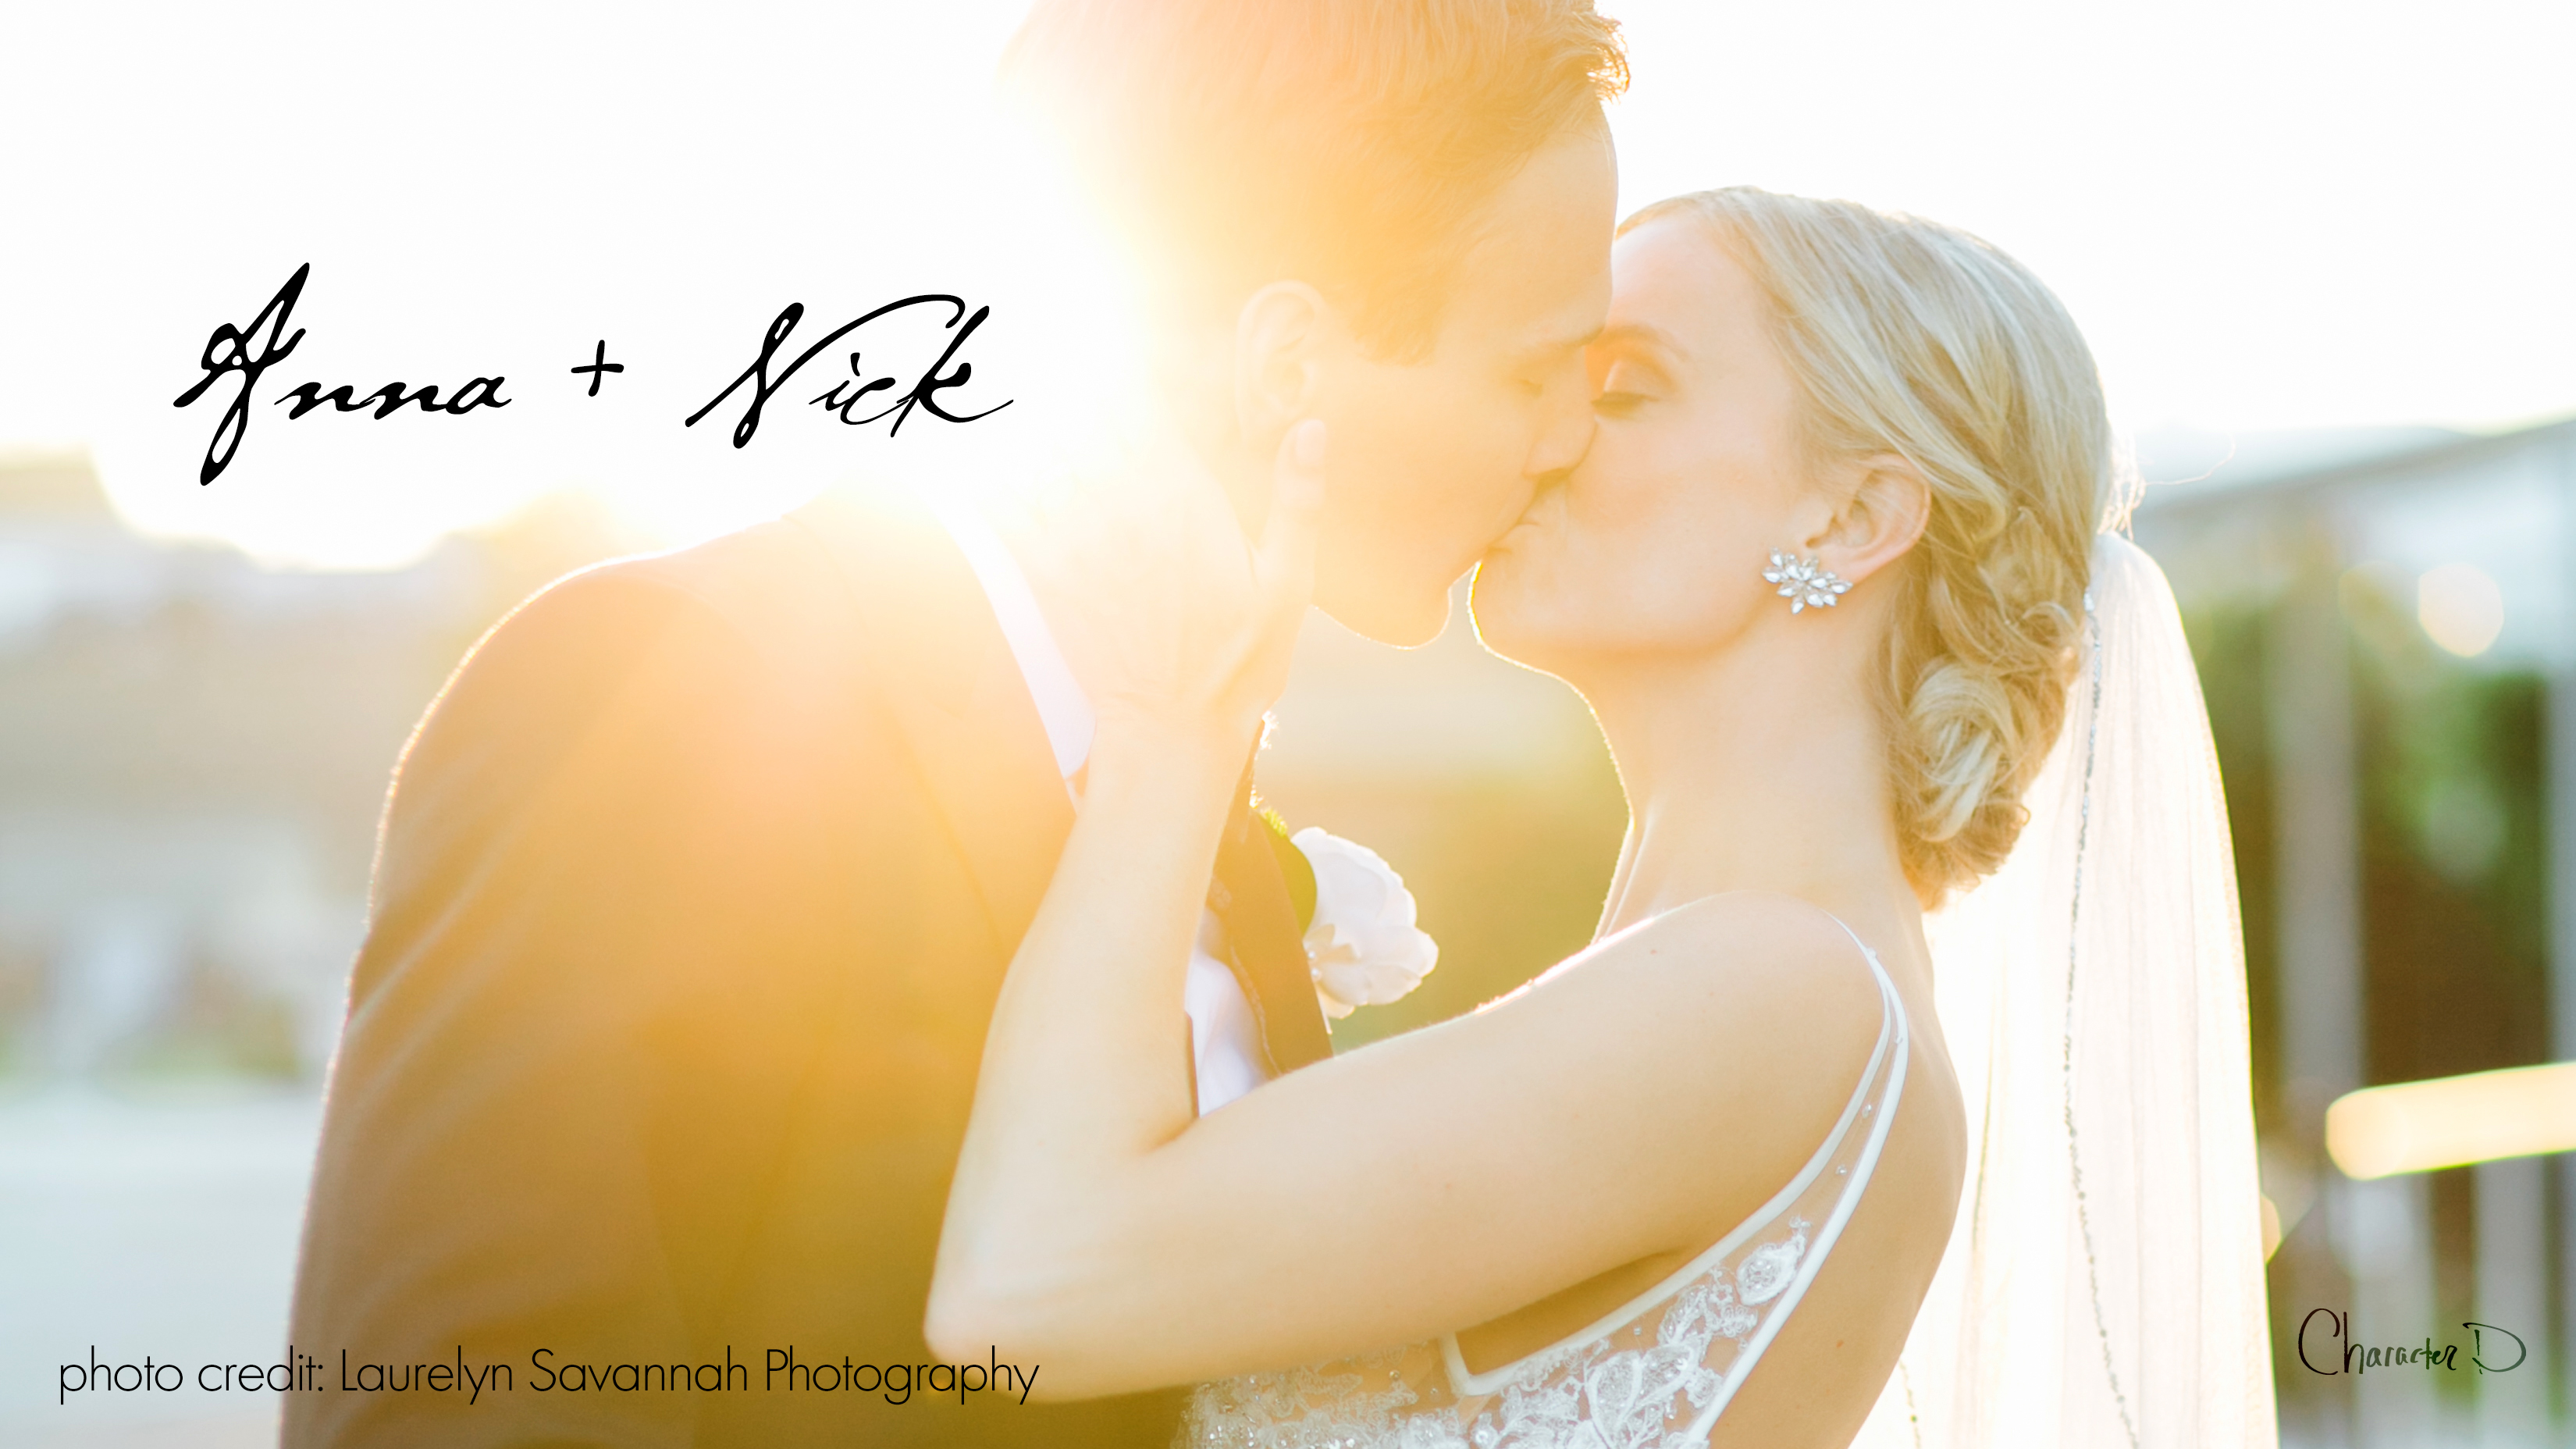 Anna + Nick | Green Bay, Wisconsin | Badger State Brewing